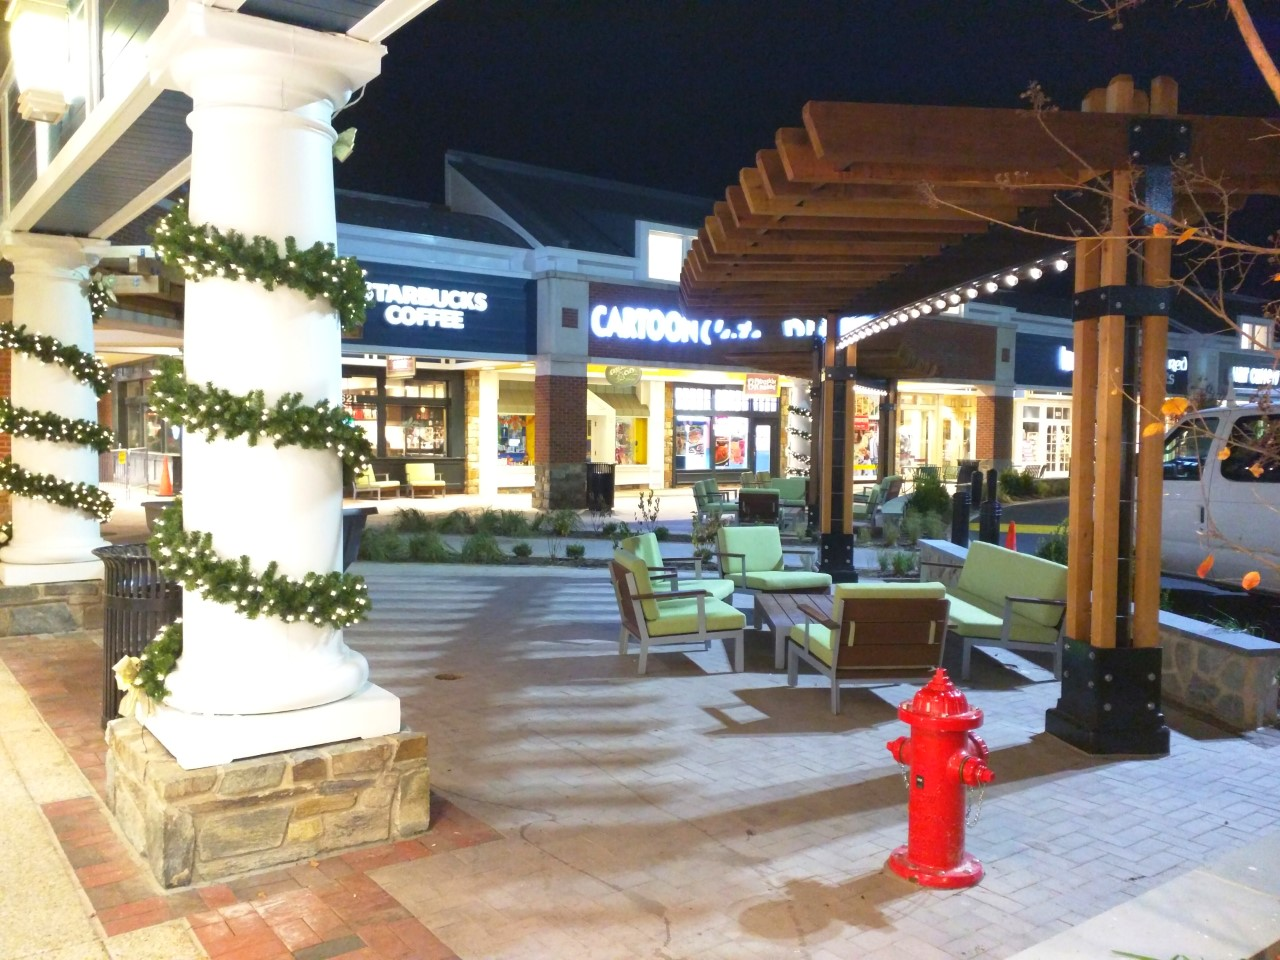 Modern Market Is Opening Soon At Congressional Plaza On Rockville Pike A New Outdoor Patio Dining Area Has Been Created Adjacent To The Restaurant